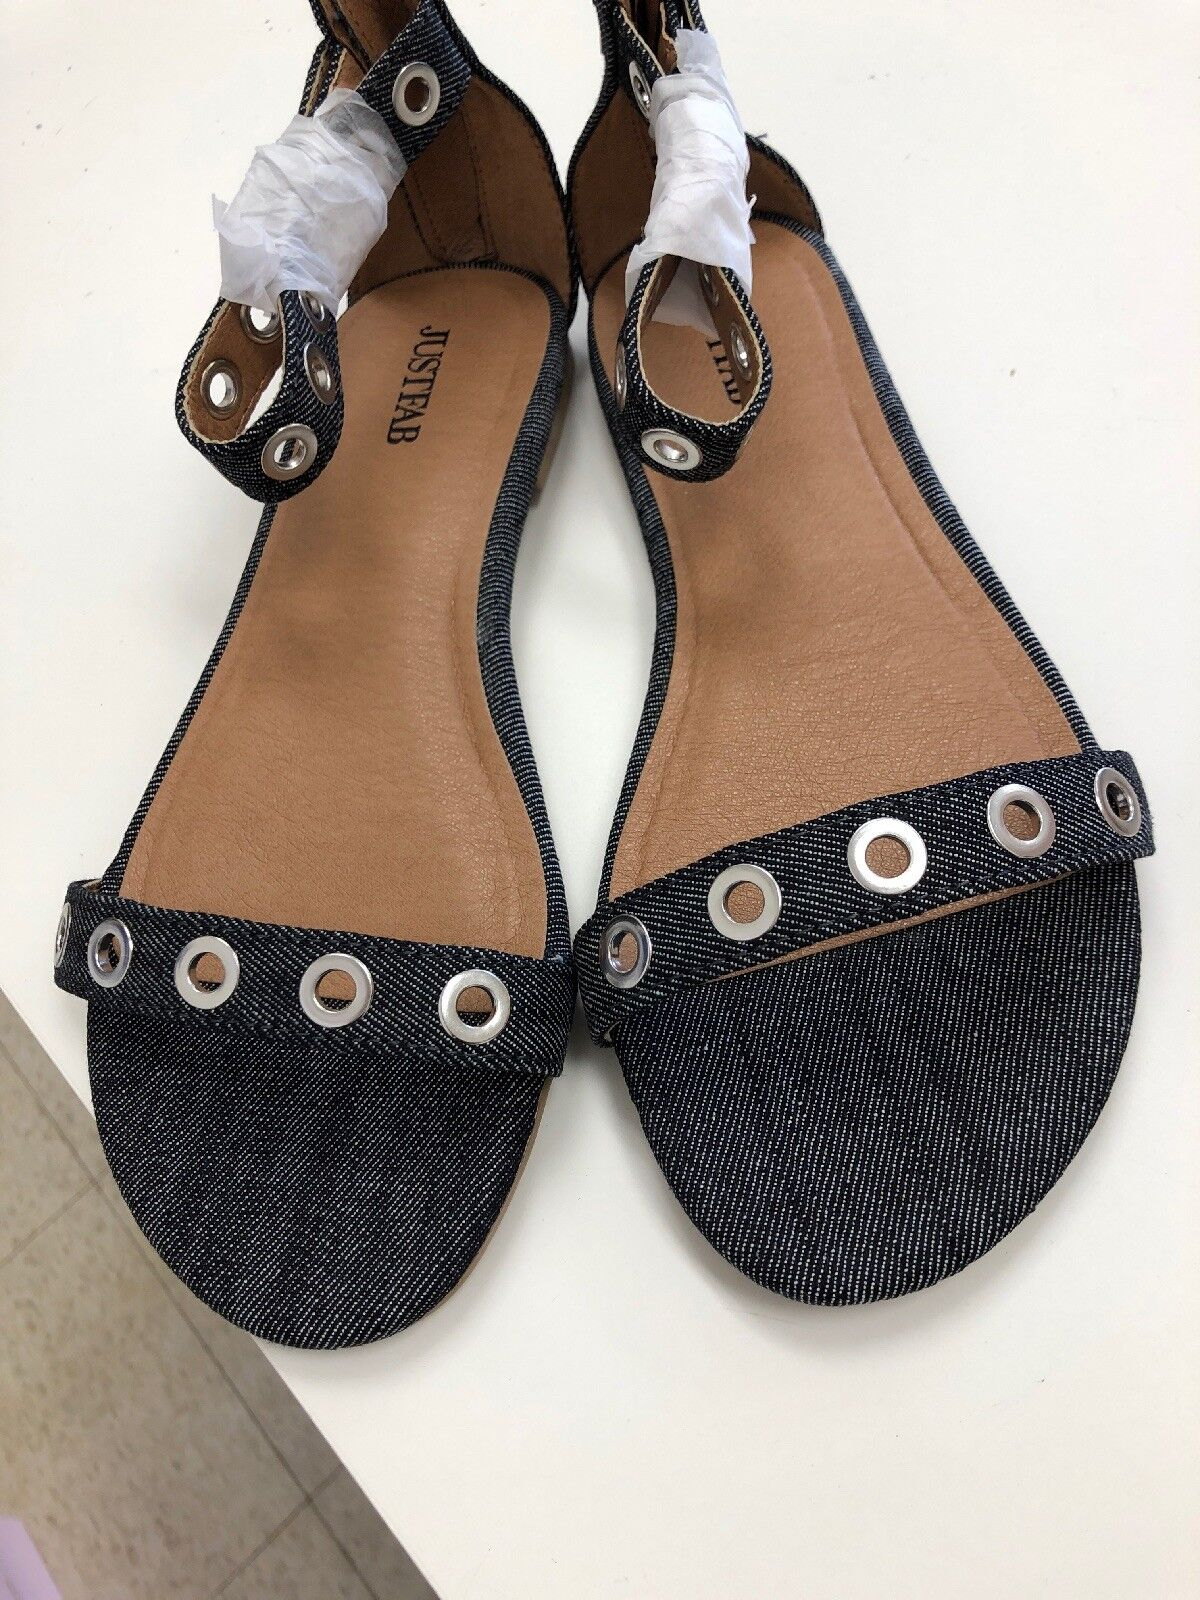 Justfab  sierra  Sandals Silver Grommets Rear zip size 7